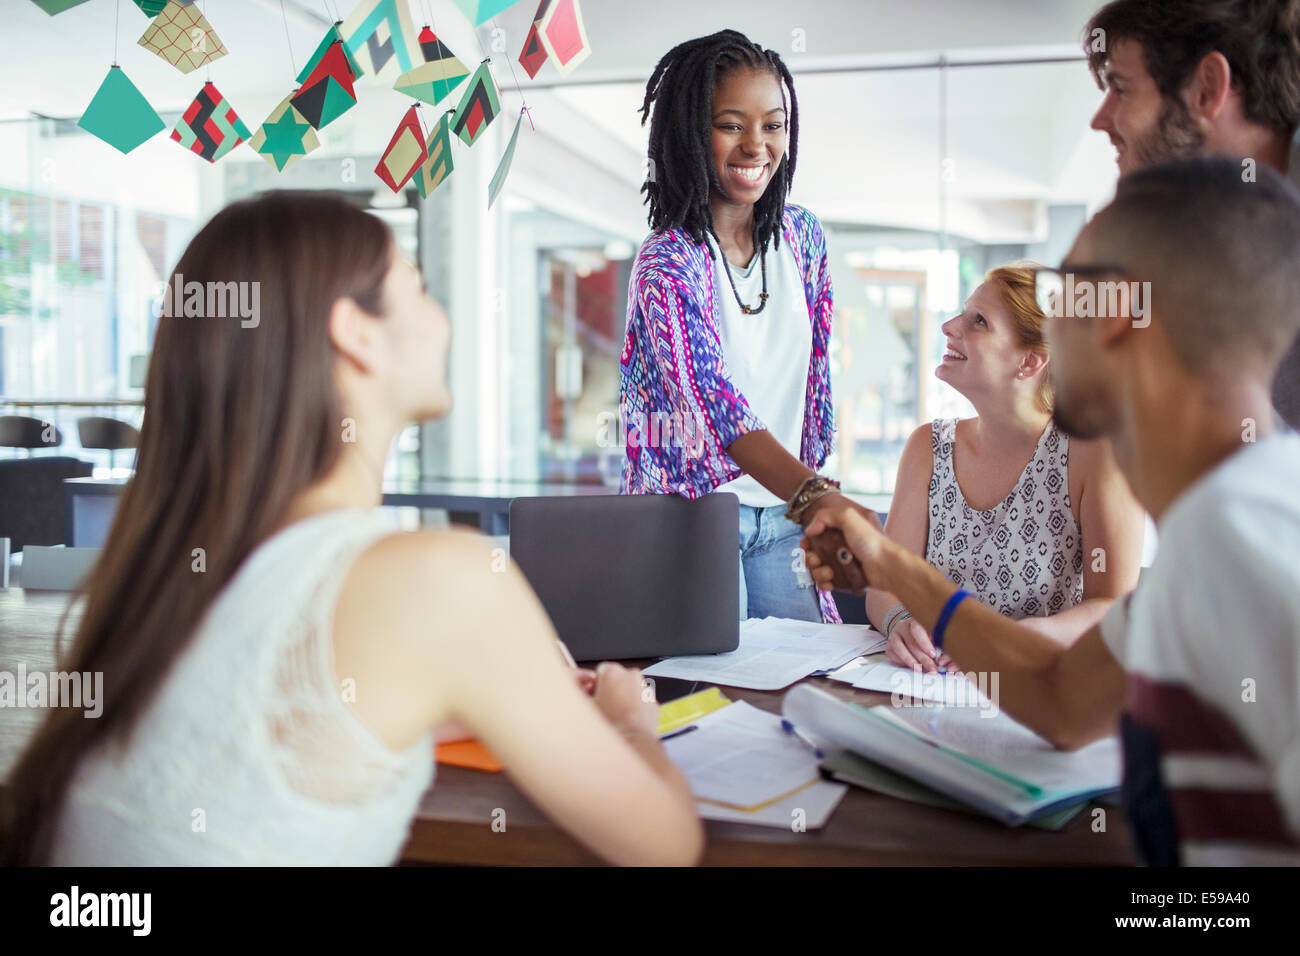 People shaking hands in meeting - Stock Image